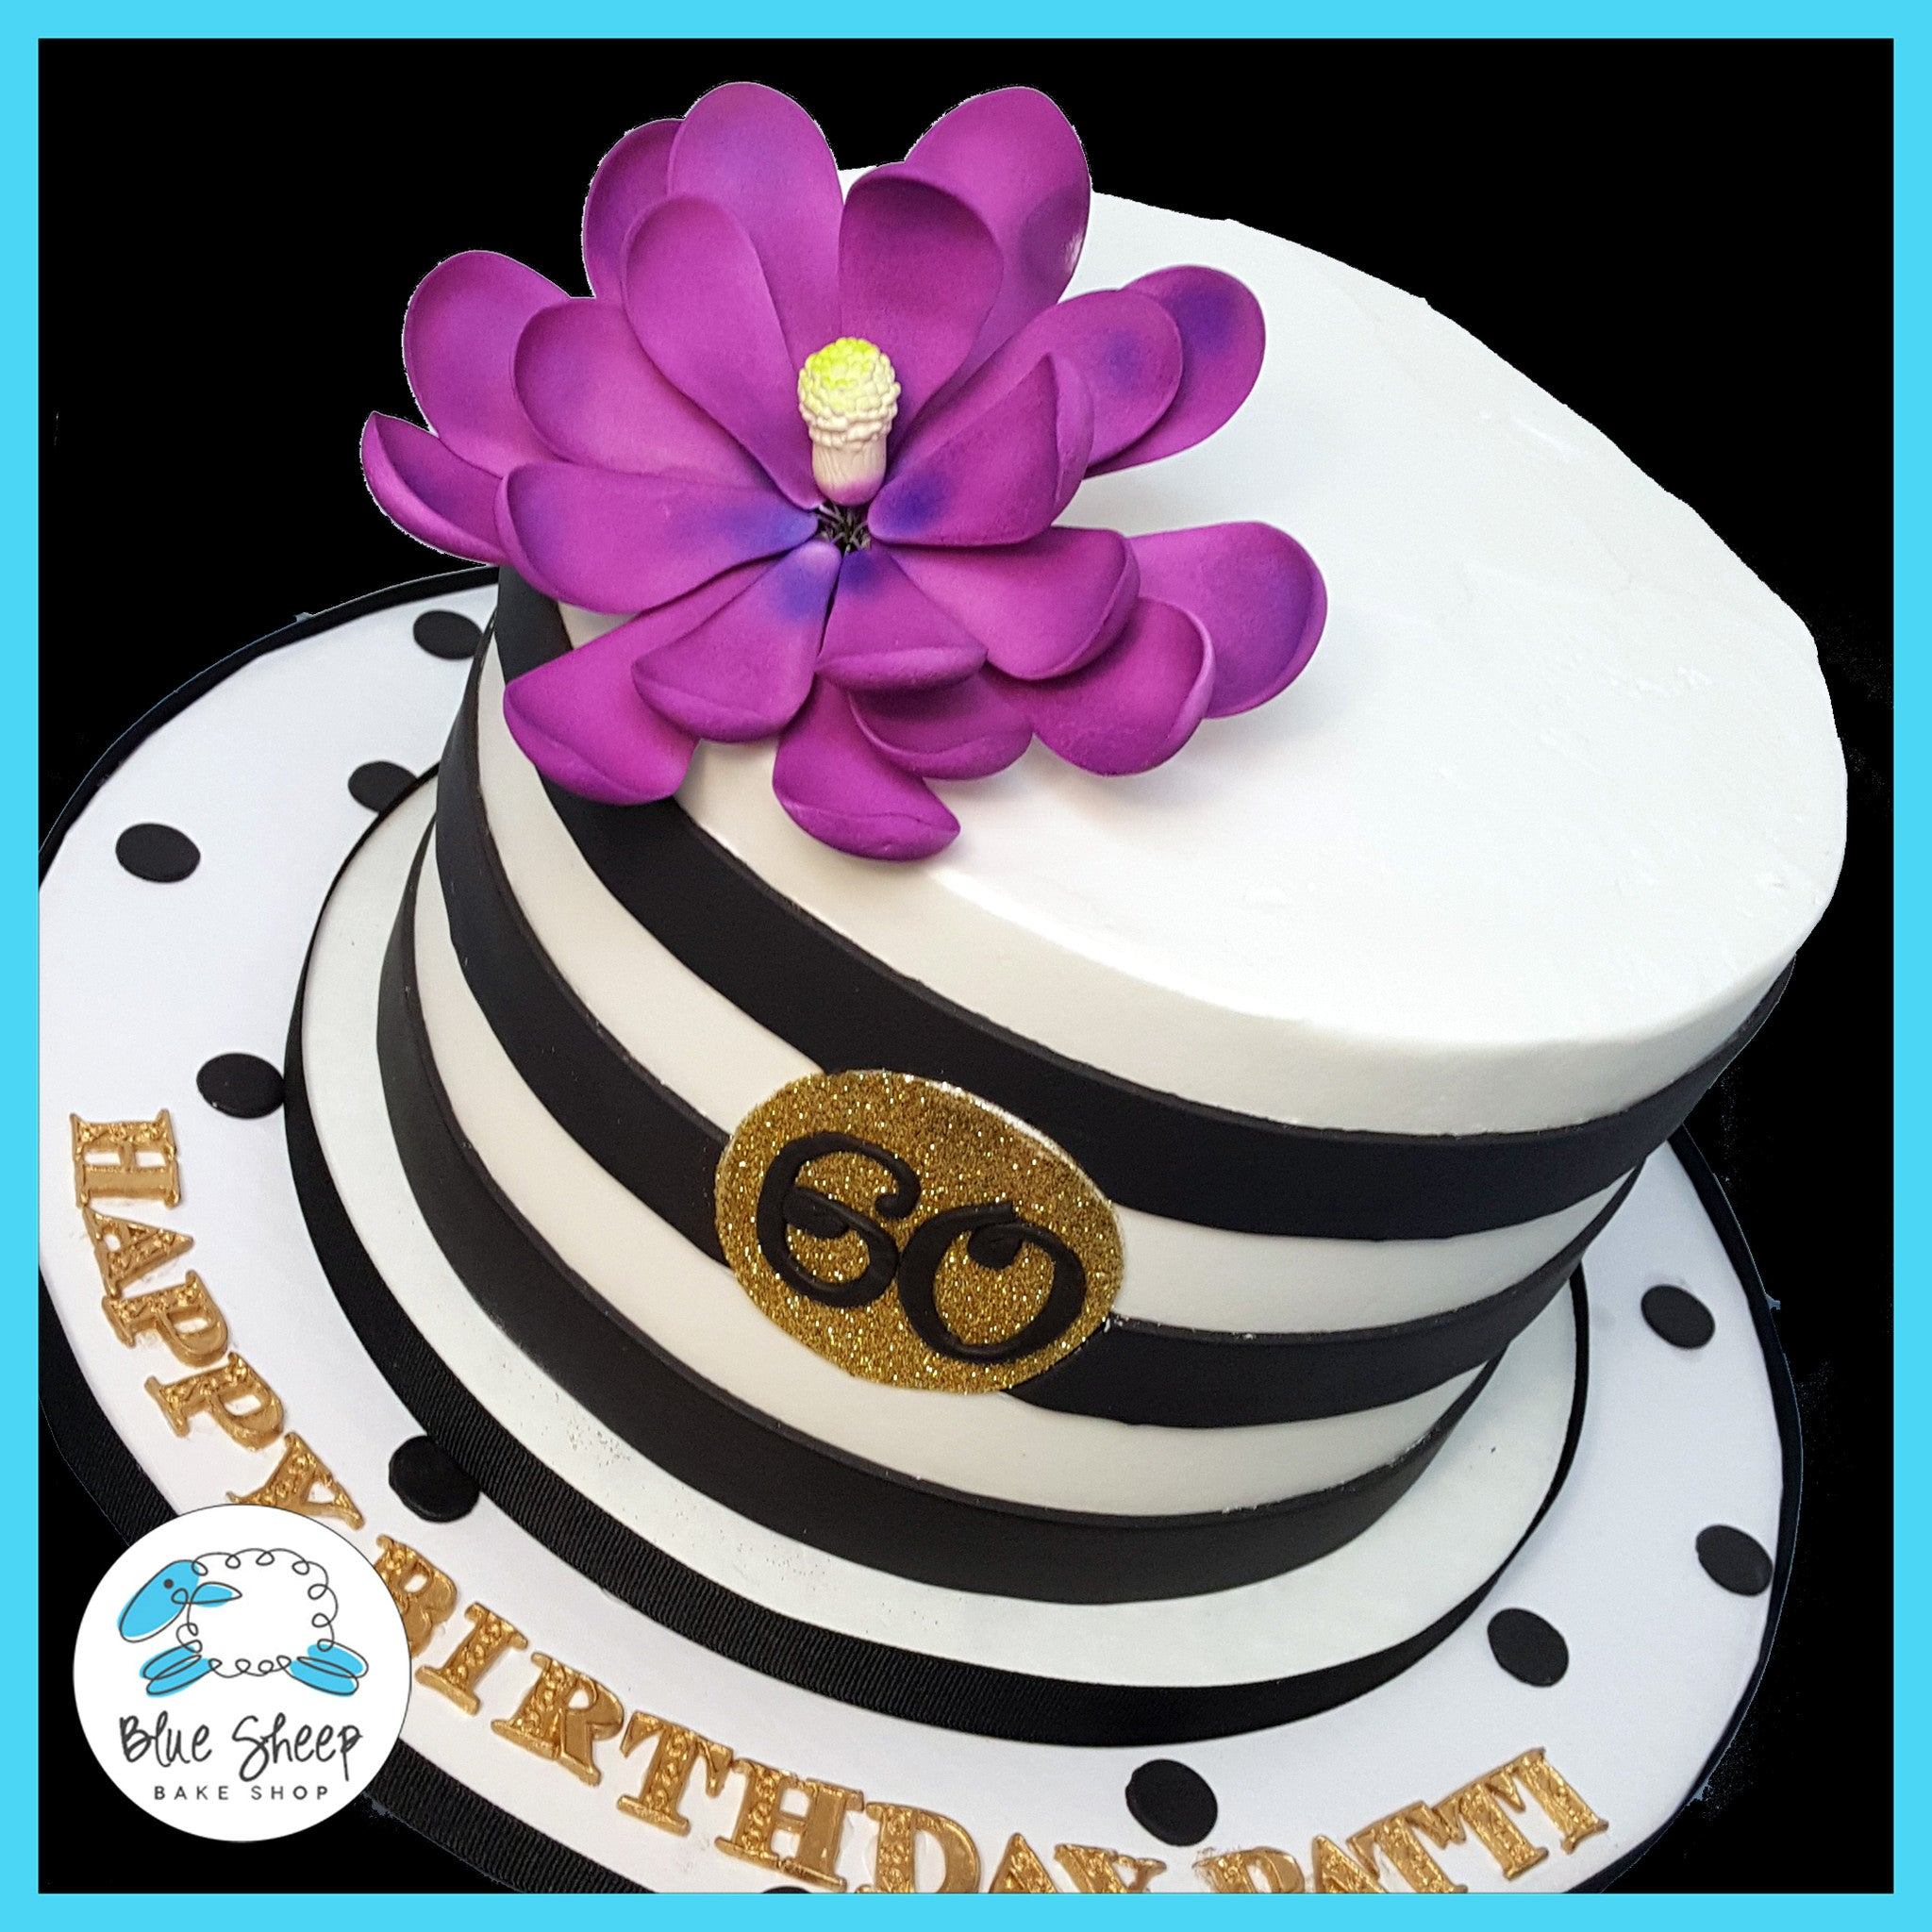 Black And White Striped Couture Birthday Cake Blue Sheep Bake Shop